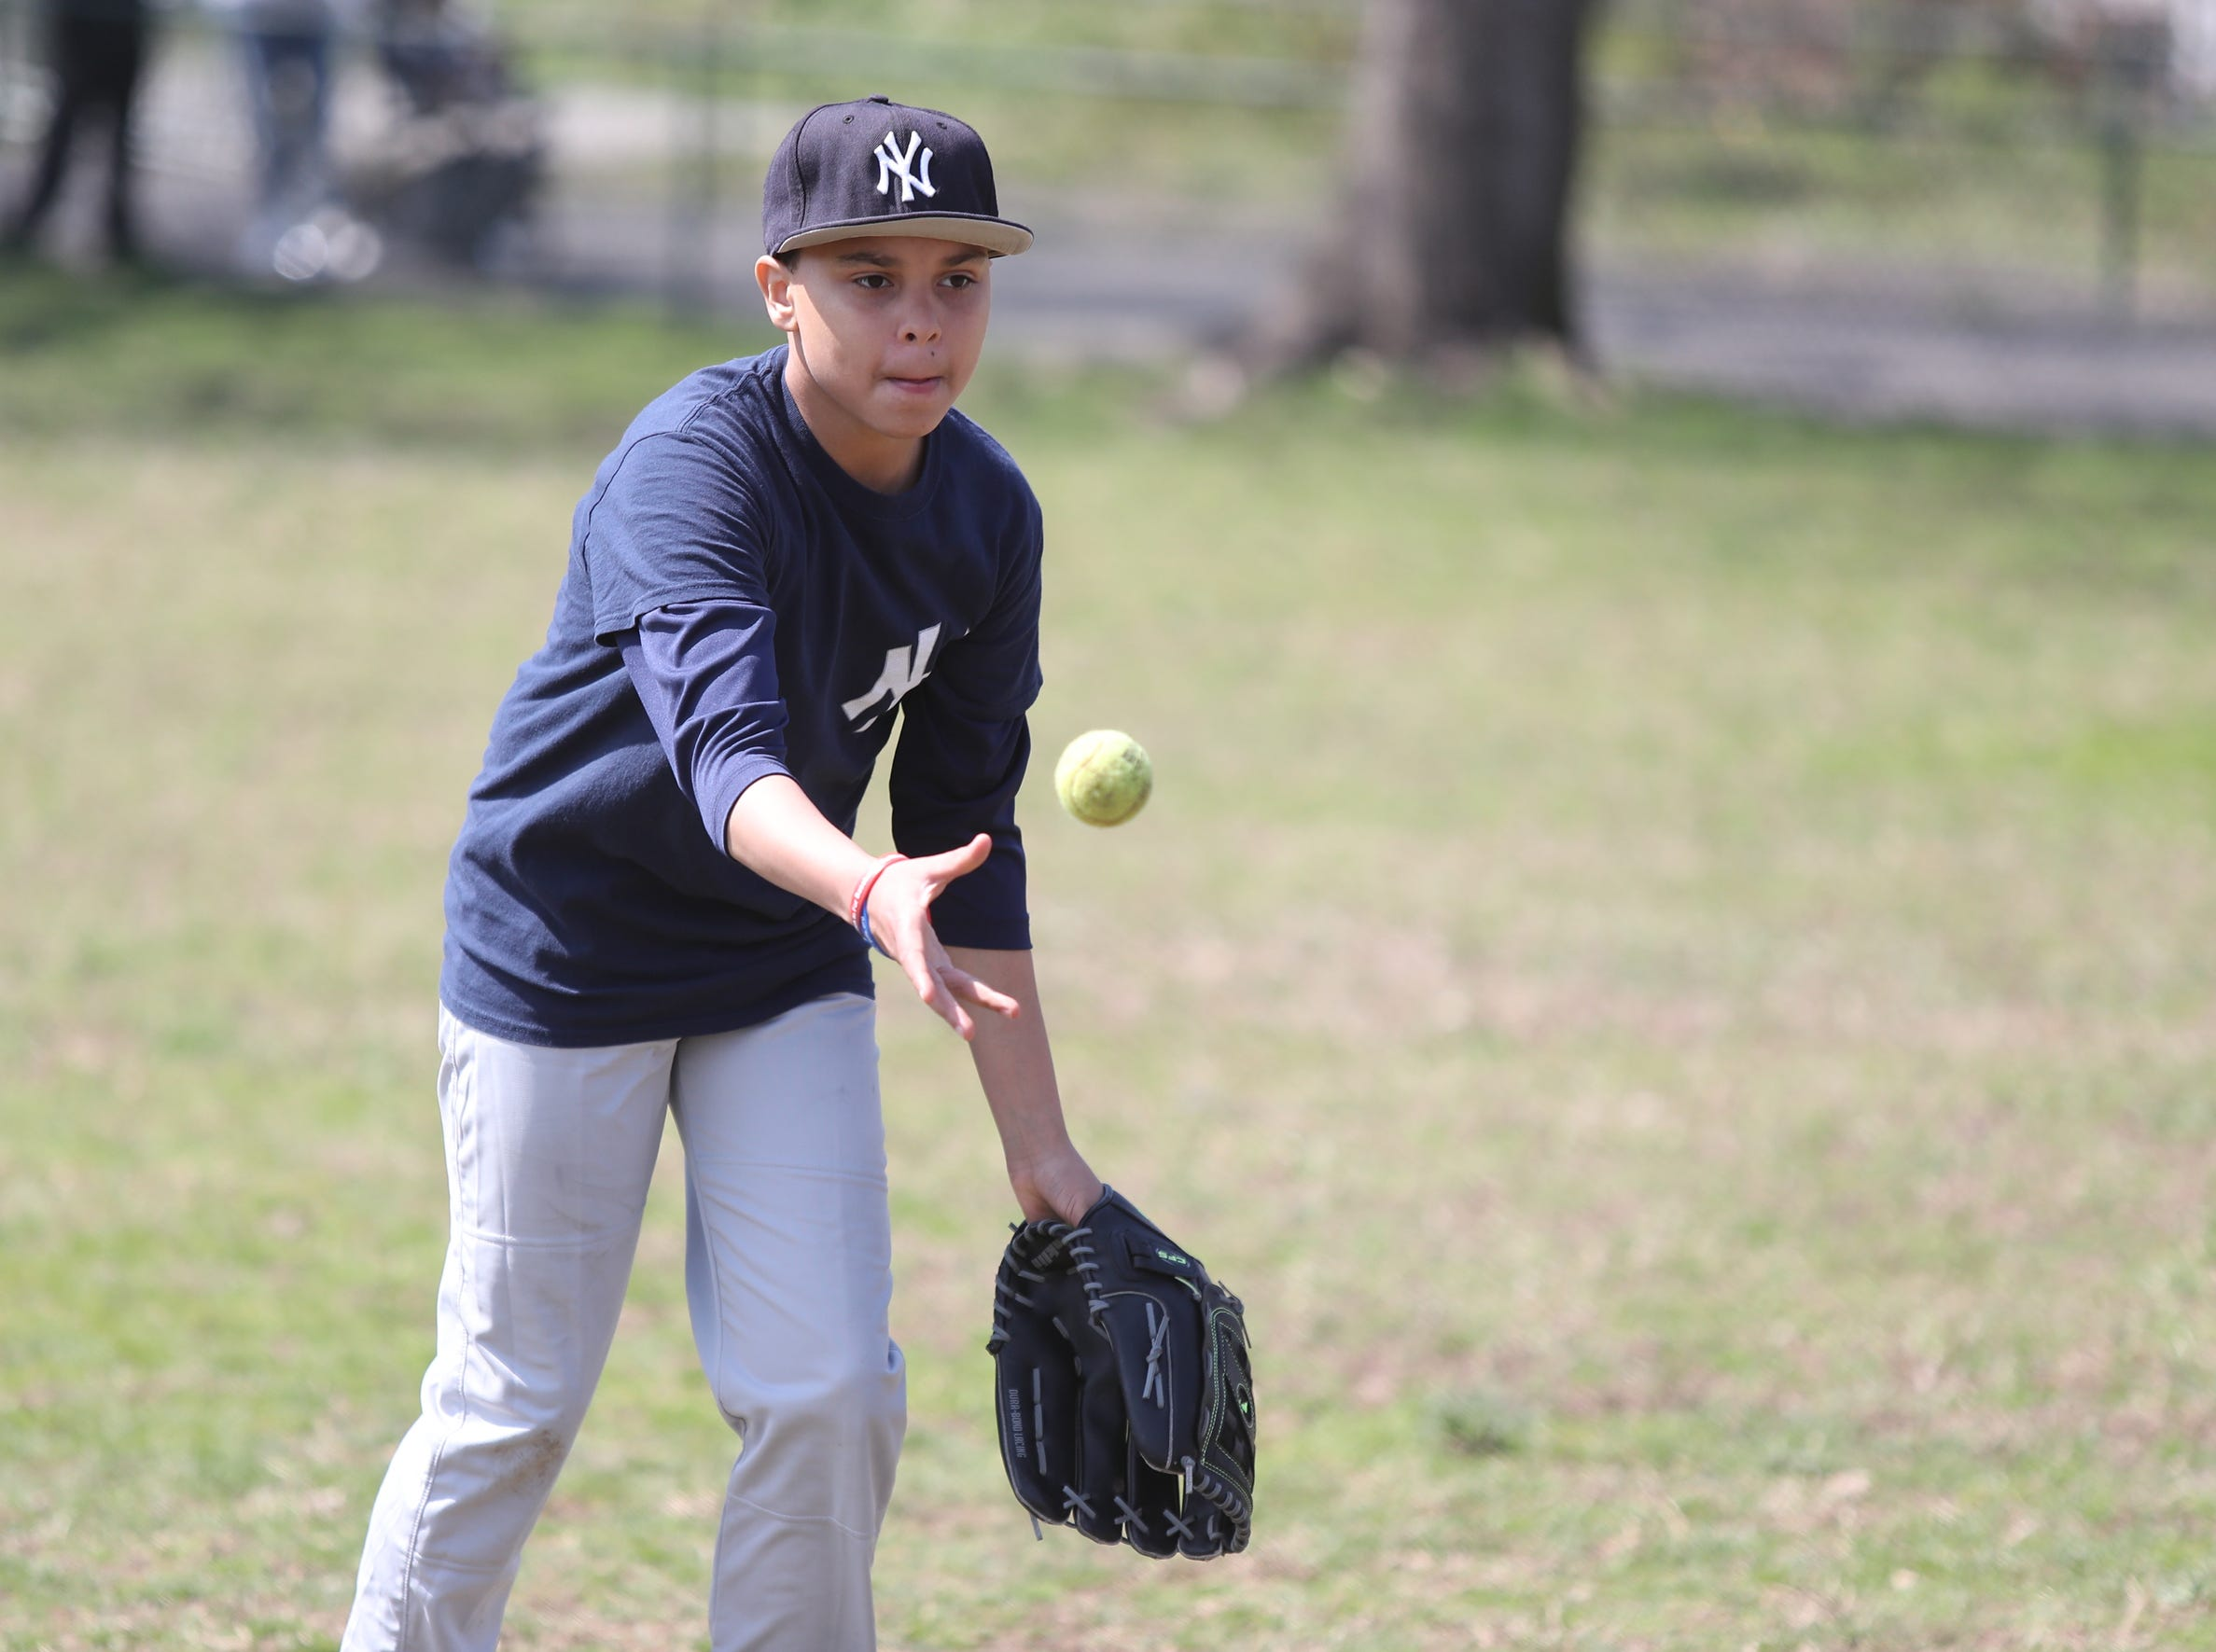 Ronald Lantigua, 11, throws to first during little league practice at Brush Park on Saturday, April 13, 2019 during Jackie Robinson Day in Mount Vernon.